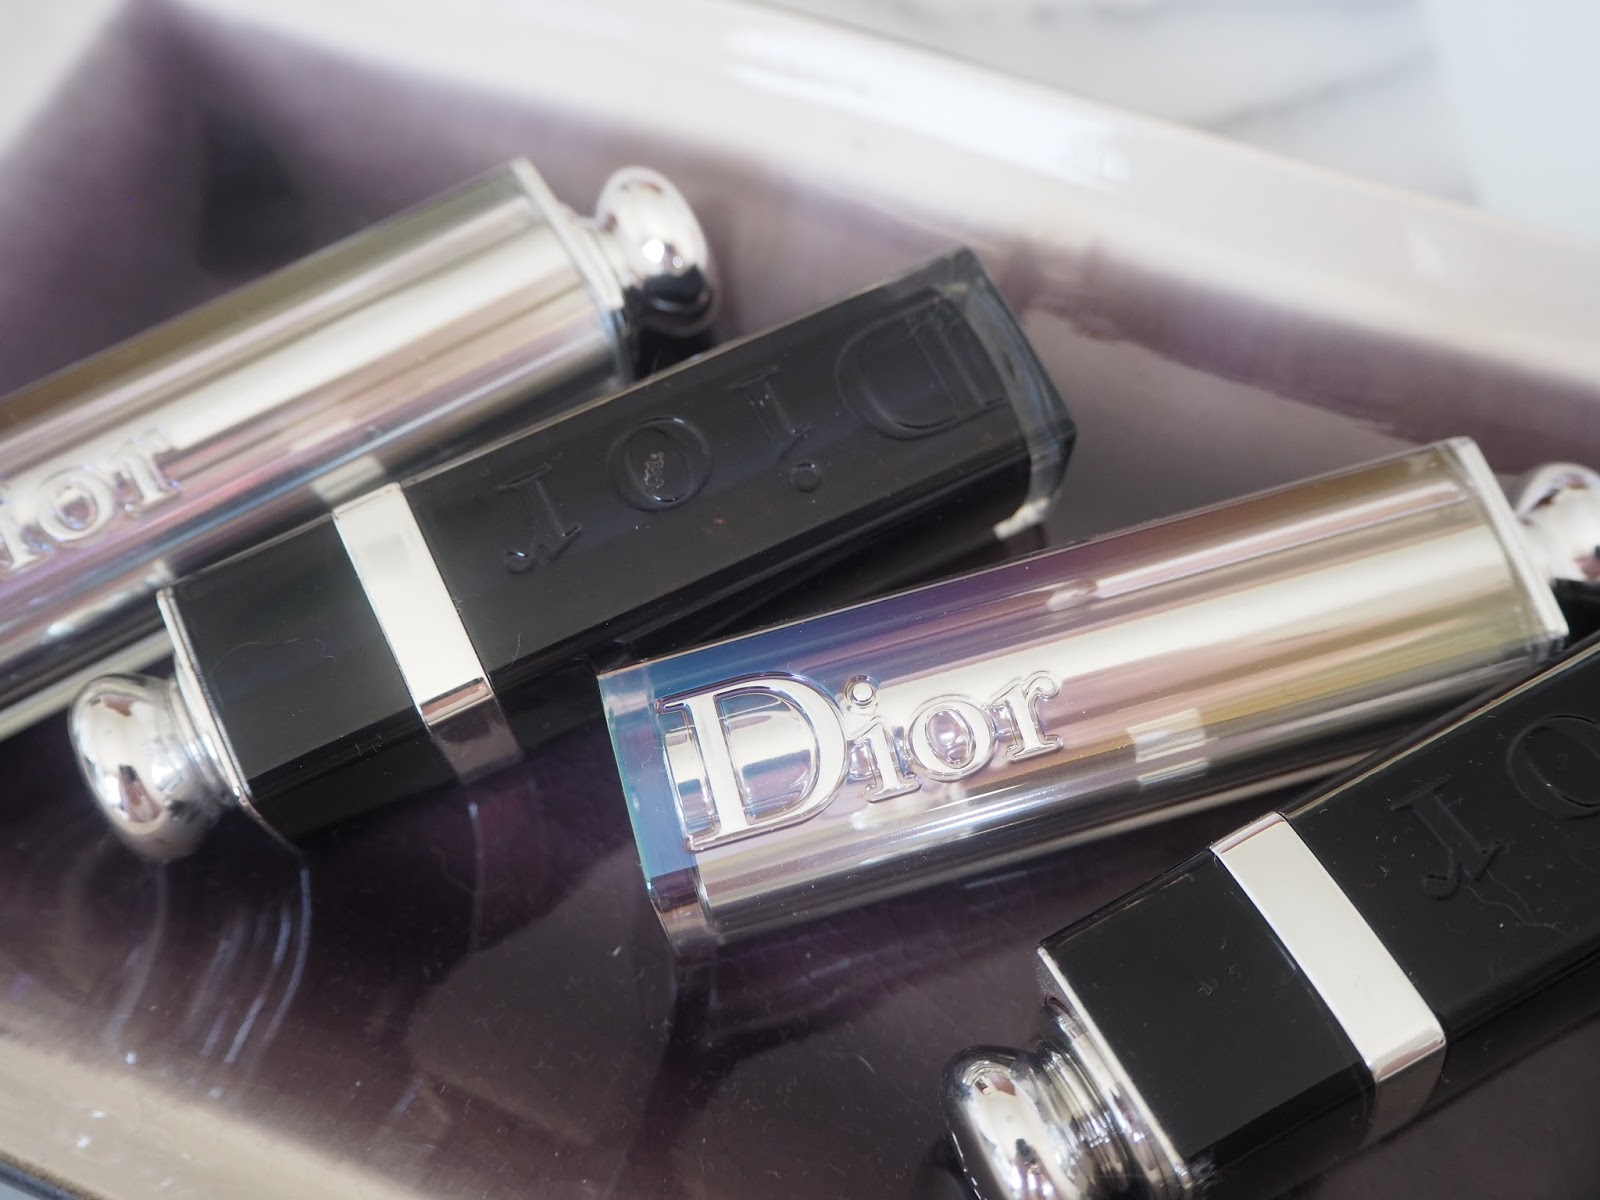 Dior Addict lipstick-Wonderful and After Party